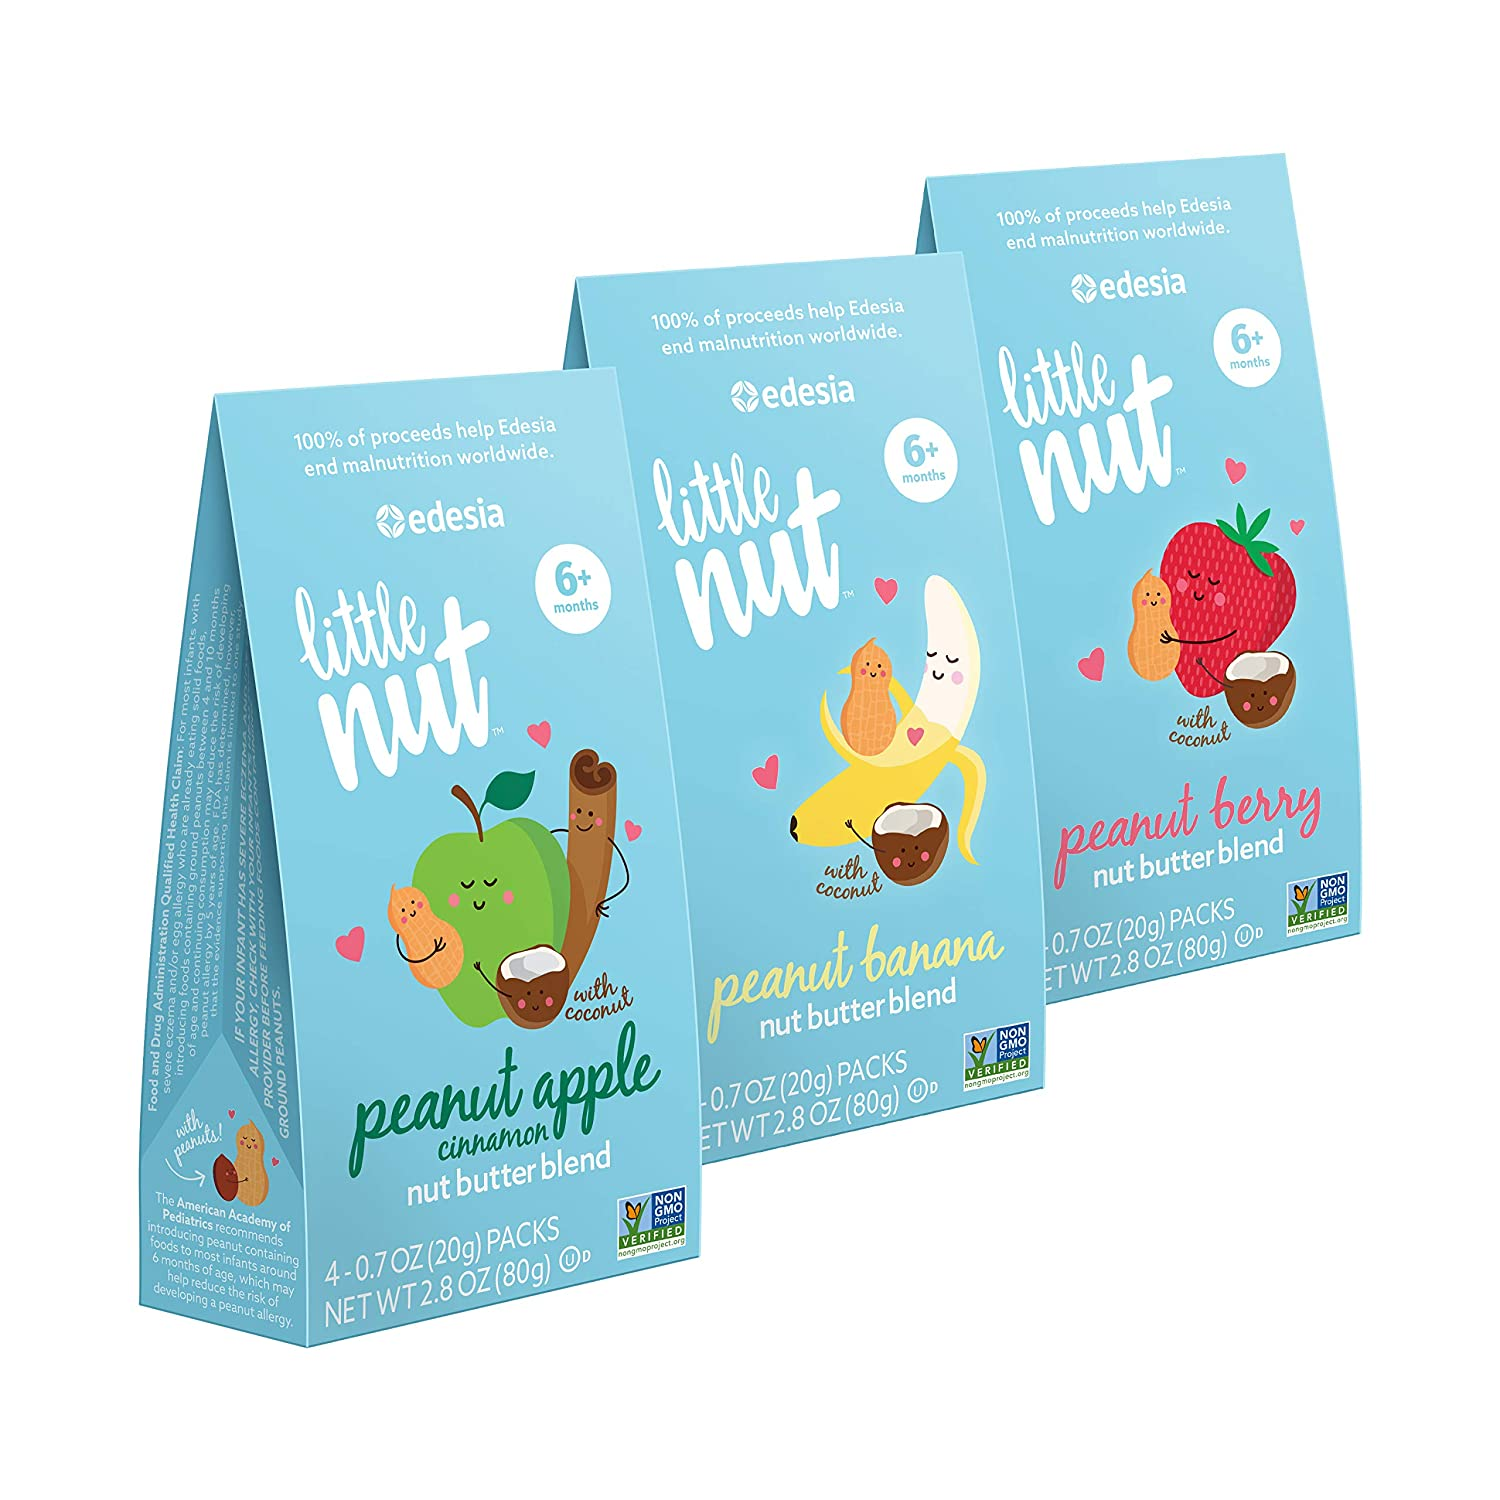 Little Nut Peanut Nut Butter Blend Variety Pack, Baby and Toddler Snacks, Non-GMO, Reduce Risk of Peanut Allergy, 12 Count Edesia